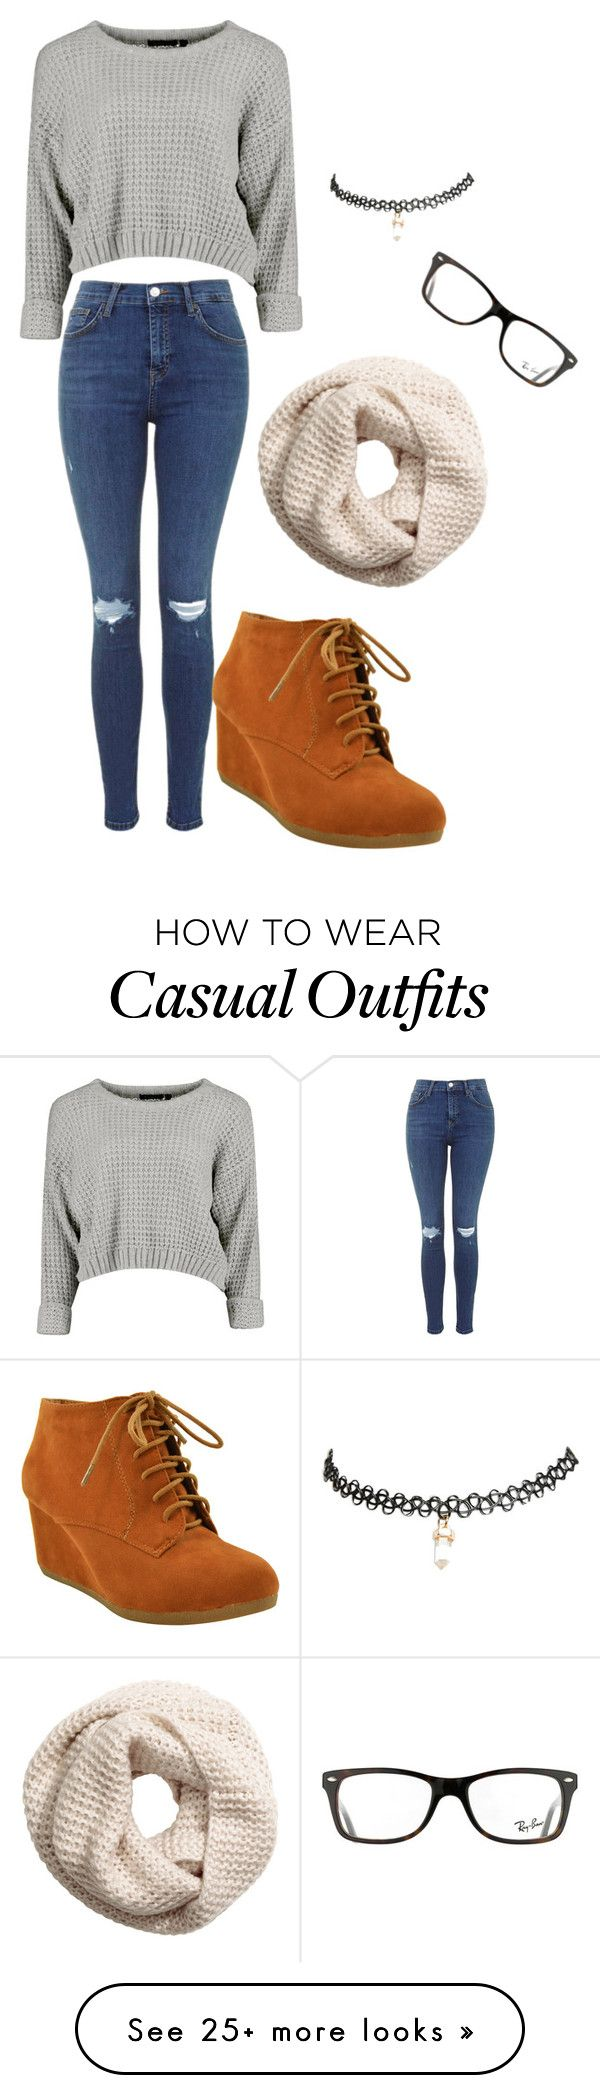 casual outfit by craycrayiyana on Polyvore featuring HM, Wet Seal and Ray-Ban